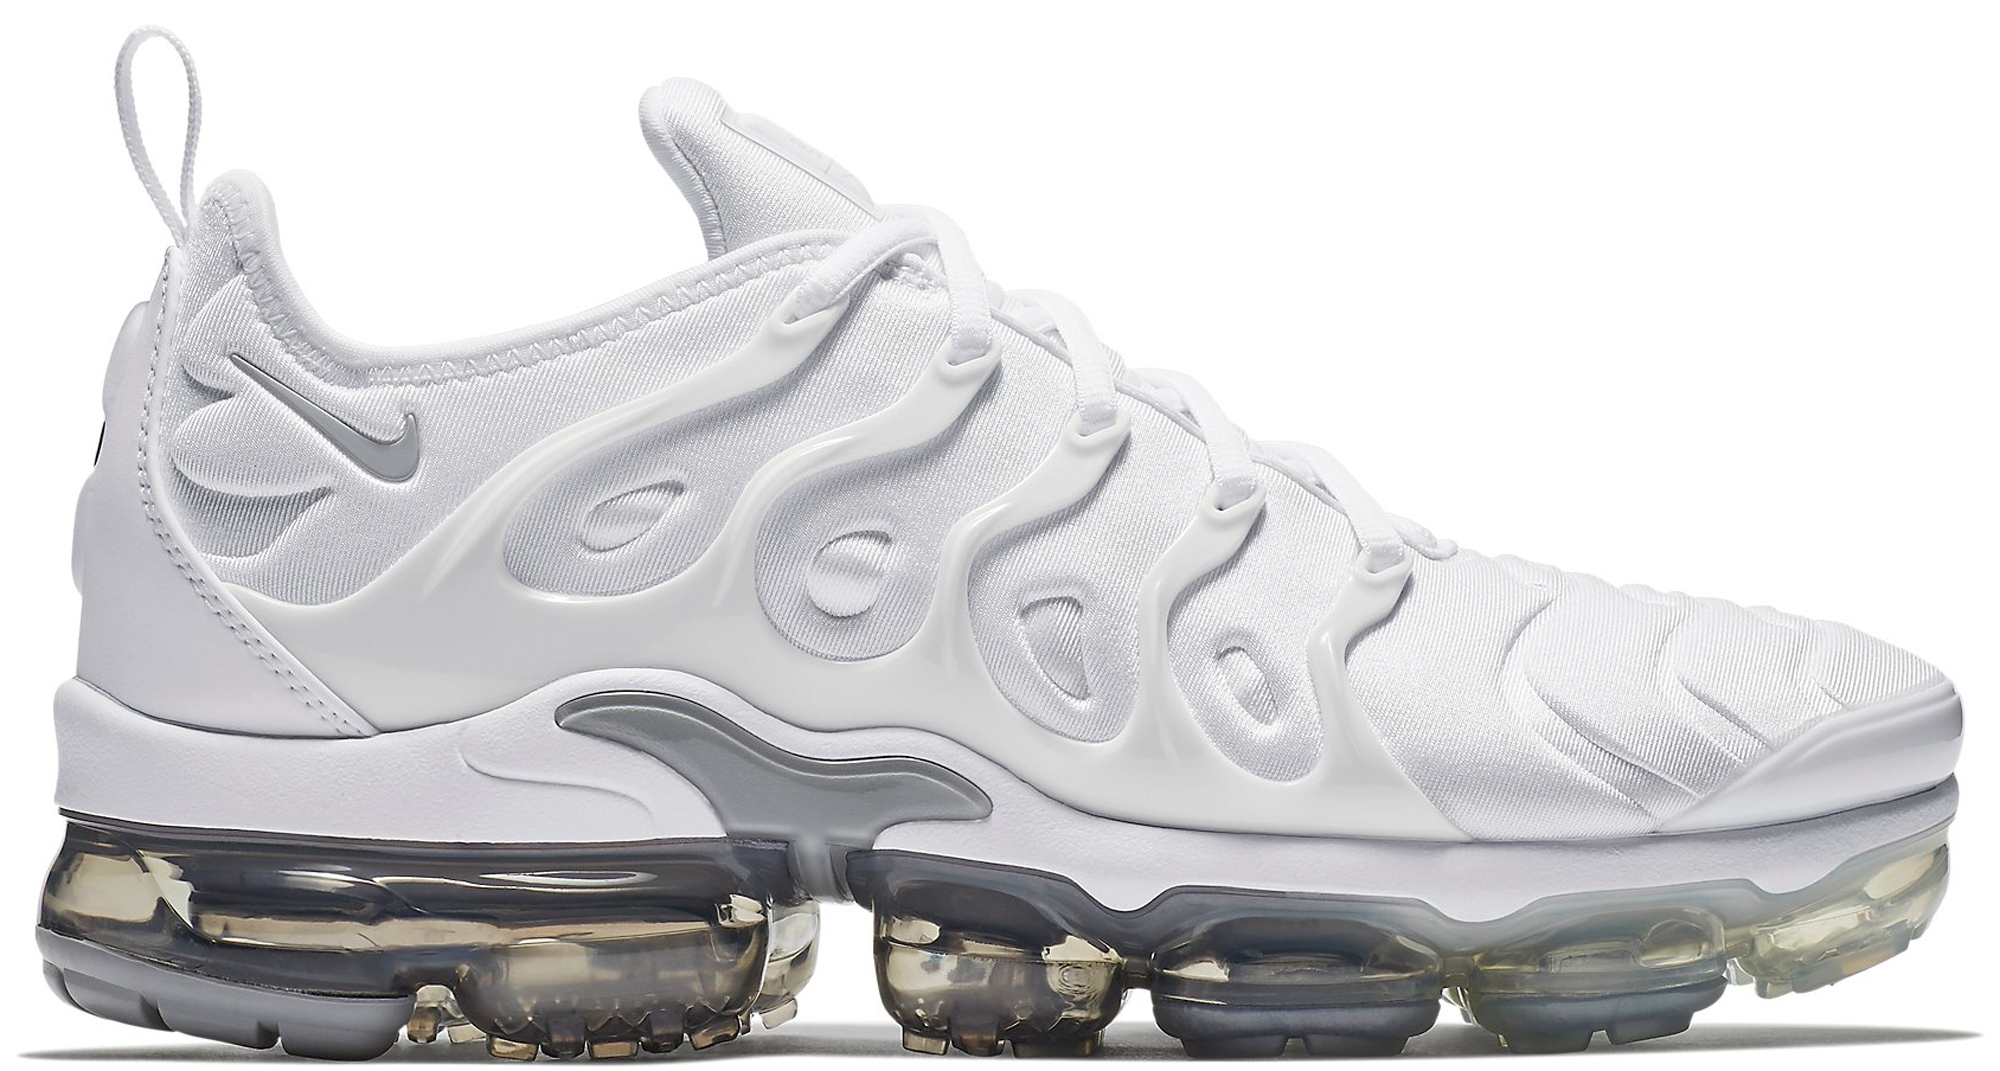 cheaper 5b2b7 a3882 Nike Air VaporMax Plus White Pure Platinum